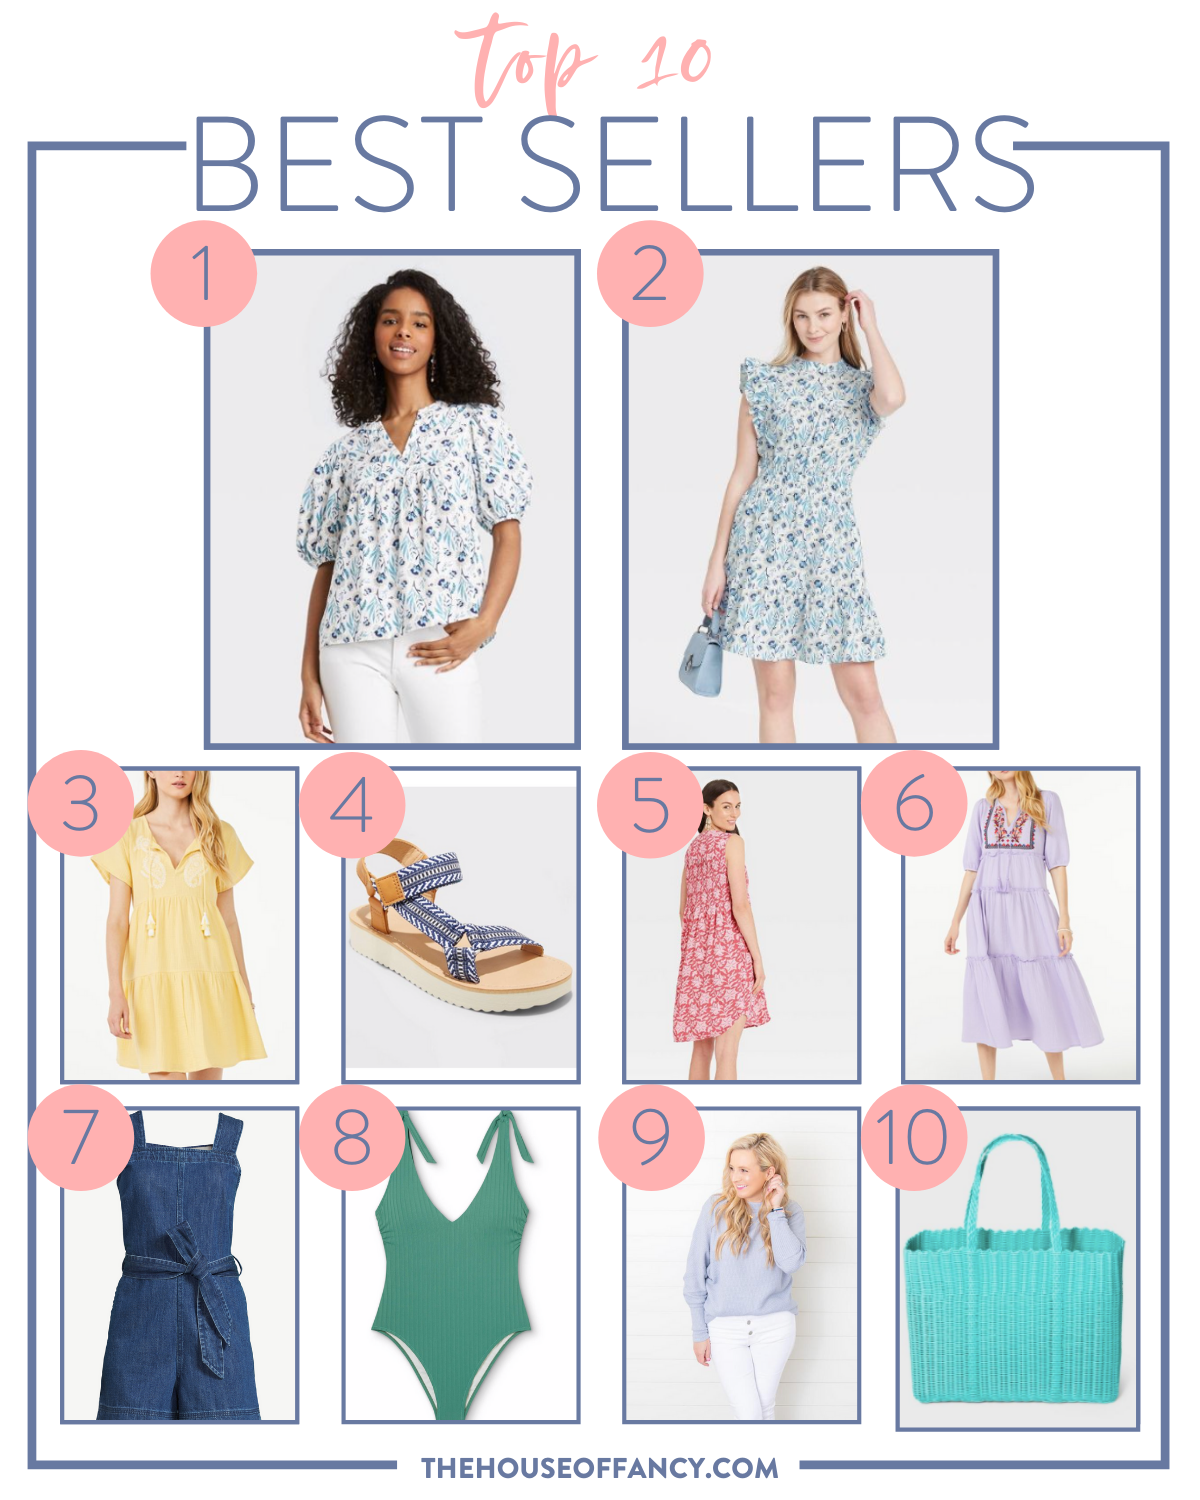 Top Sellers by popular Houston fashion blog, The House of Fancy: collage image of a blue and white floral print blouse, blue and white floral print flutter sleeve dress, yellow tiered dress, blue and white stripe strap sandals, red and white print sleeveless dress, purple floral embroidered tiered dress, denim romper, green tie strap swimsuit, white jeans, and blue wicker tote bag.